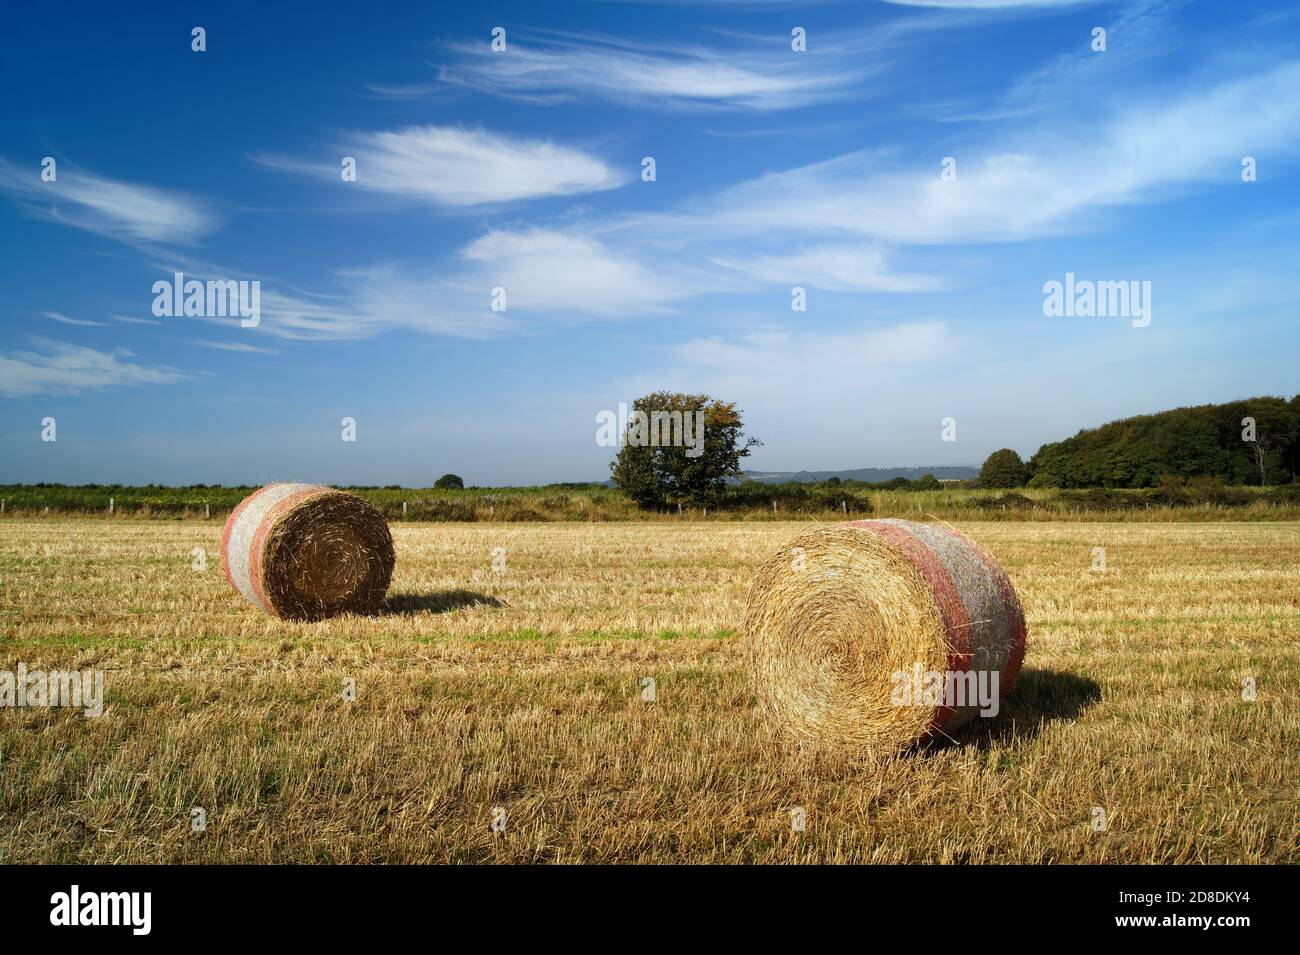 UK,South Yorkshire,Barnsley,Drum Hay Bales in Field near Silkstone Common Stock Photo